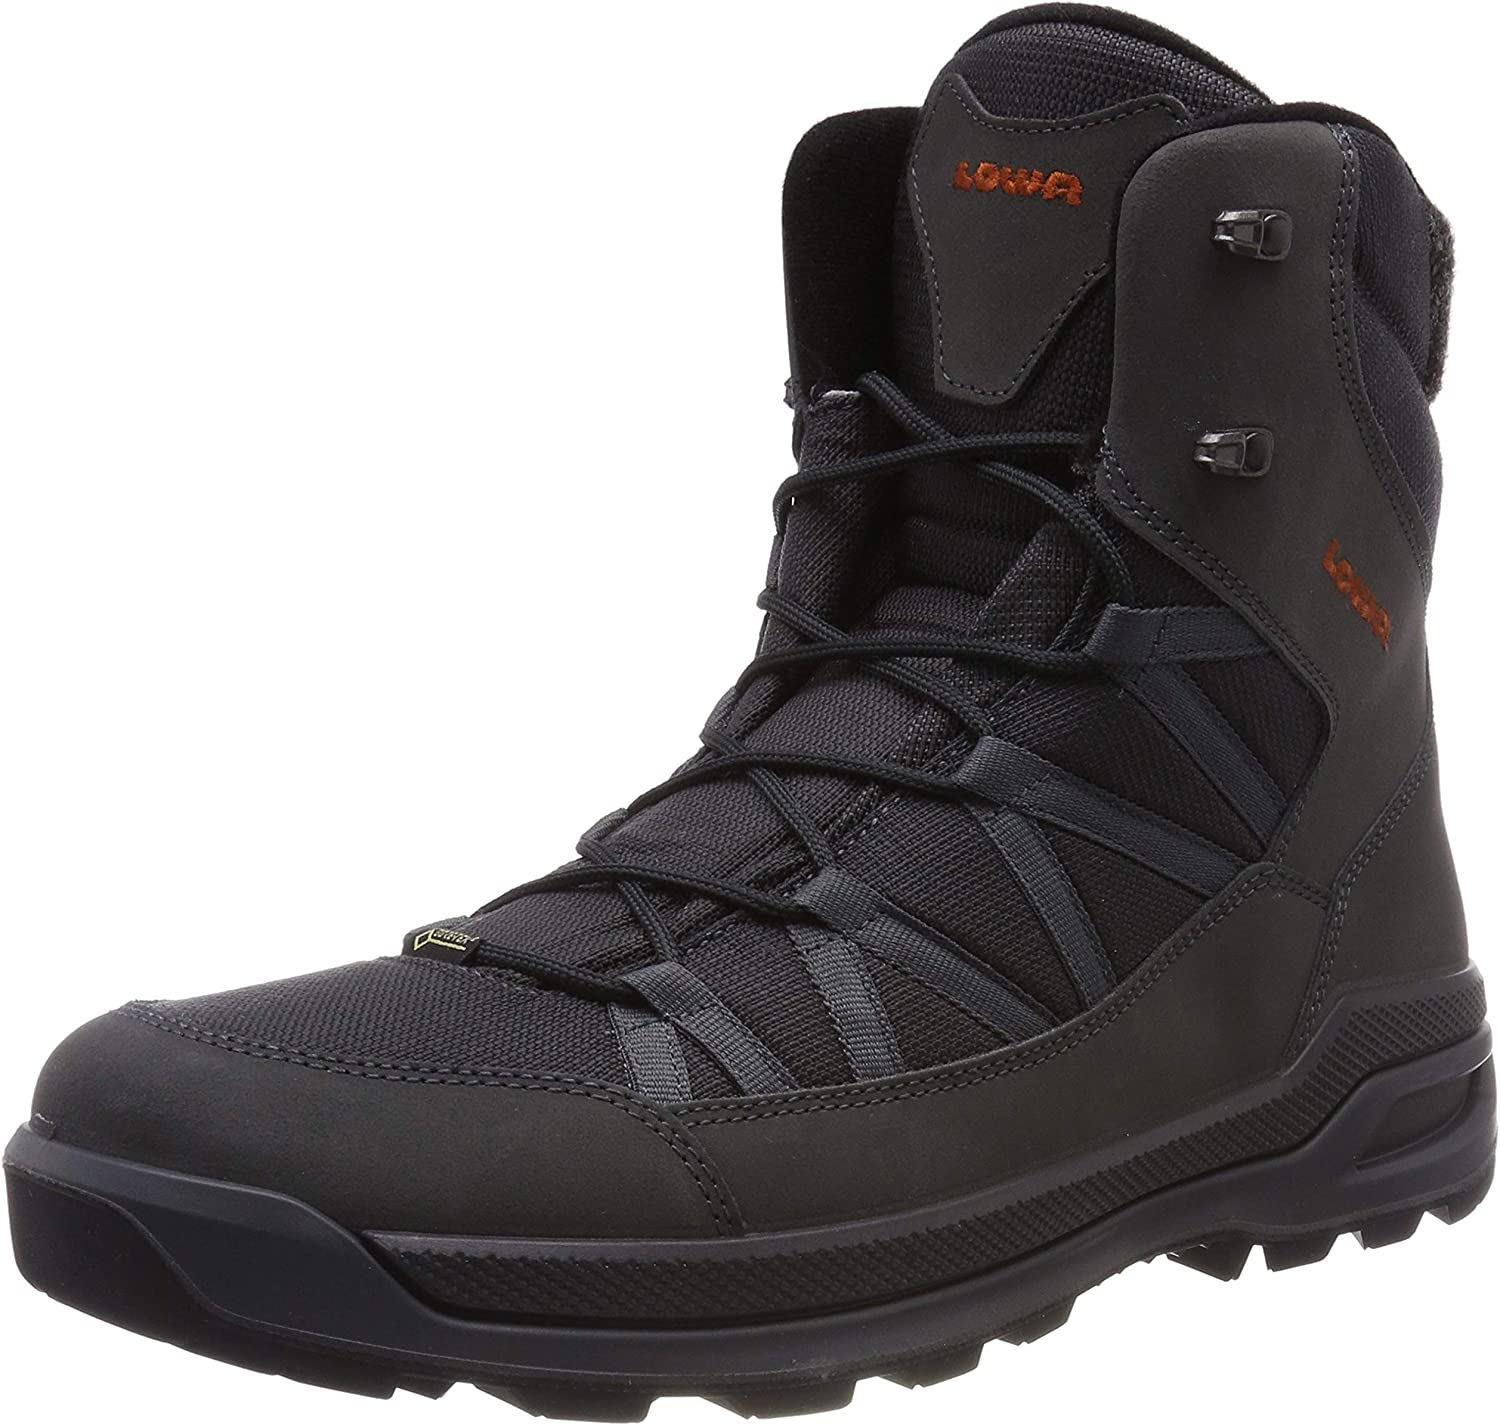 LOWA Boots Men s High Rise Hiking Shoes